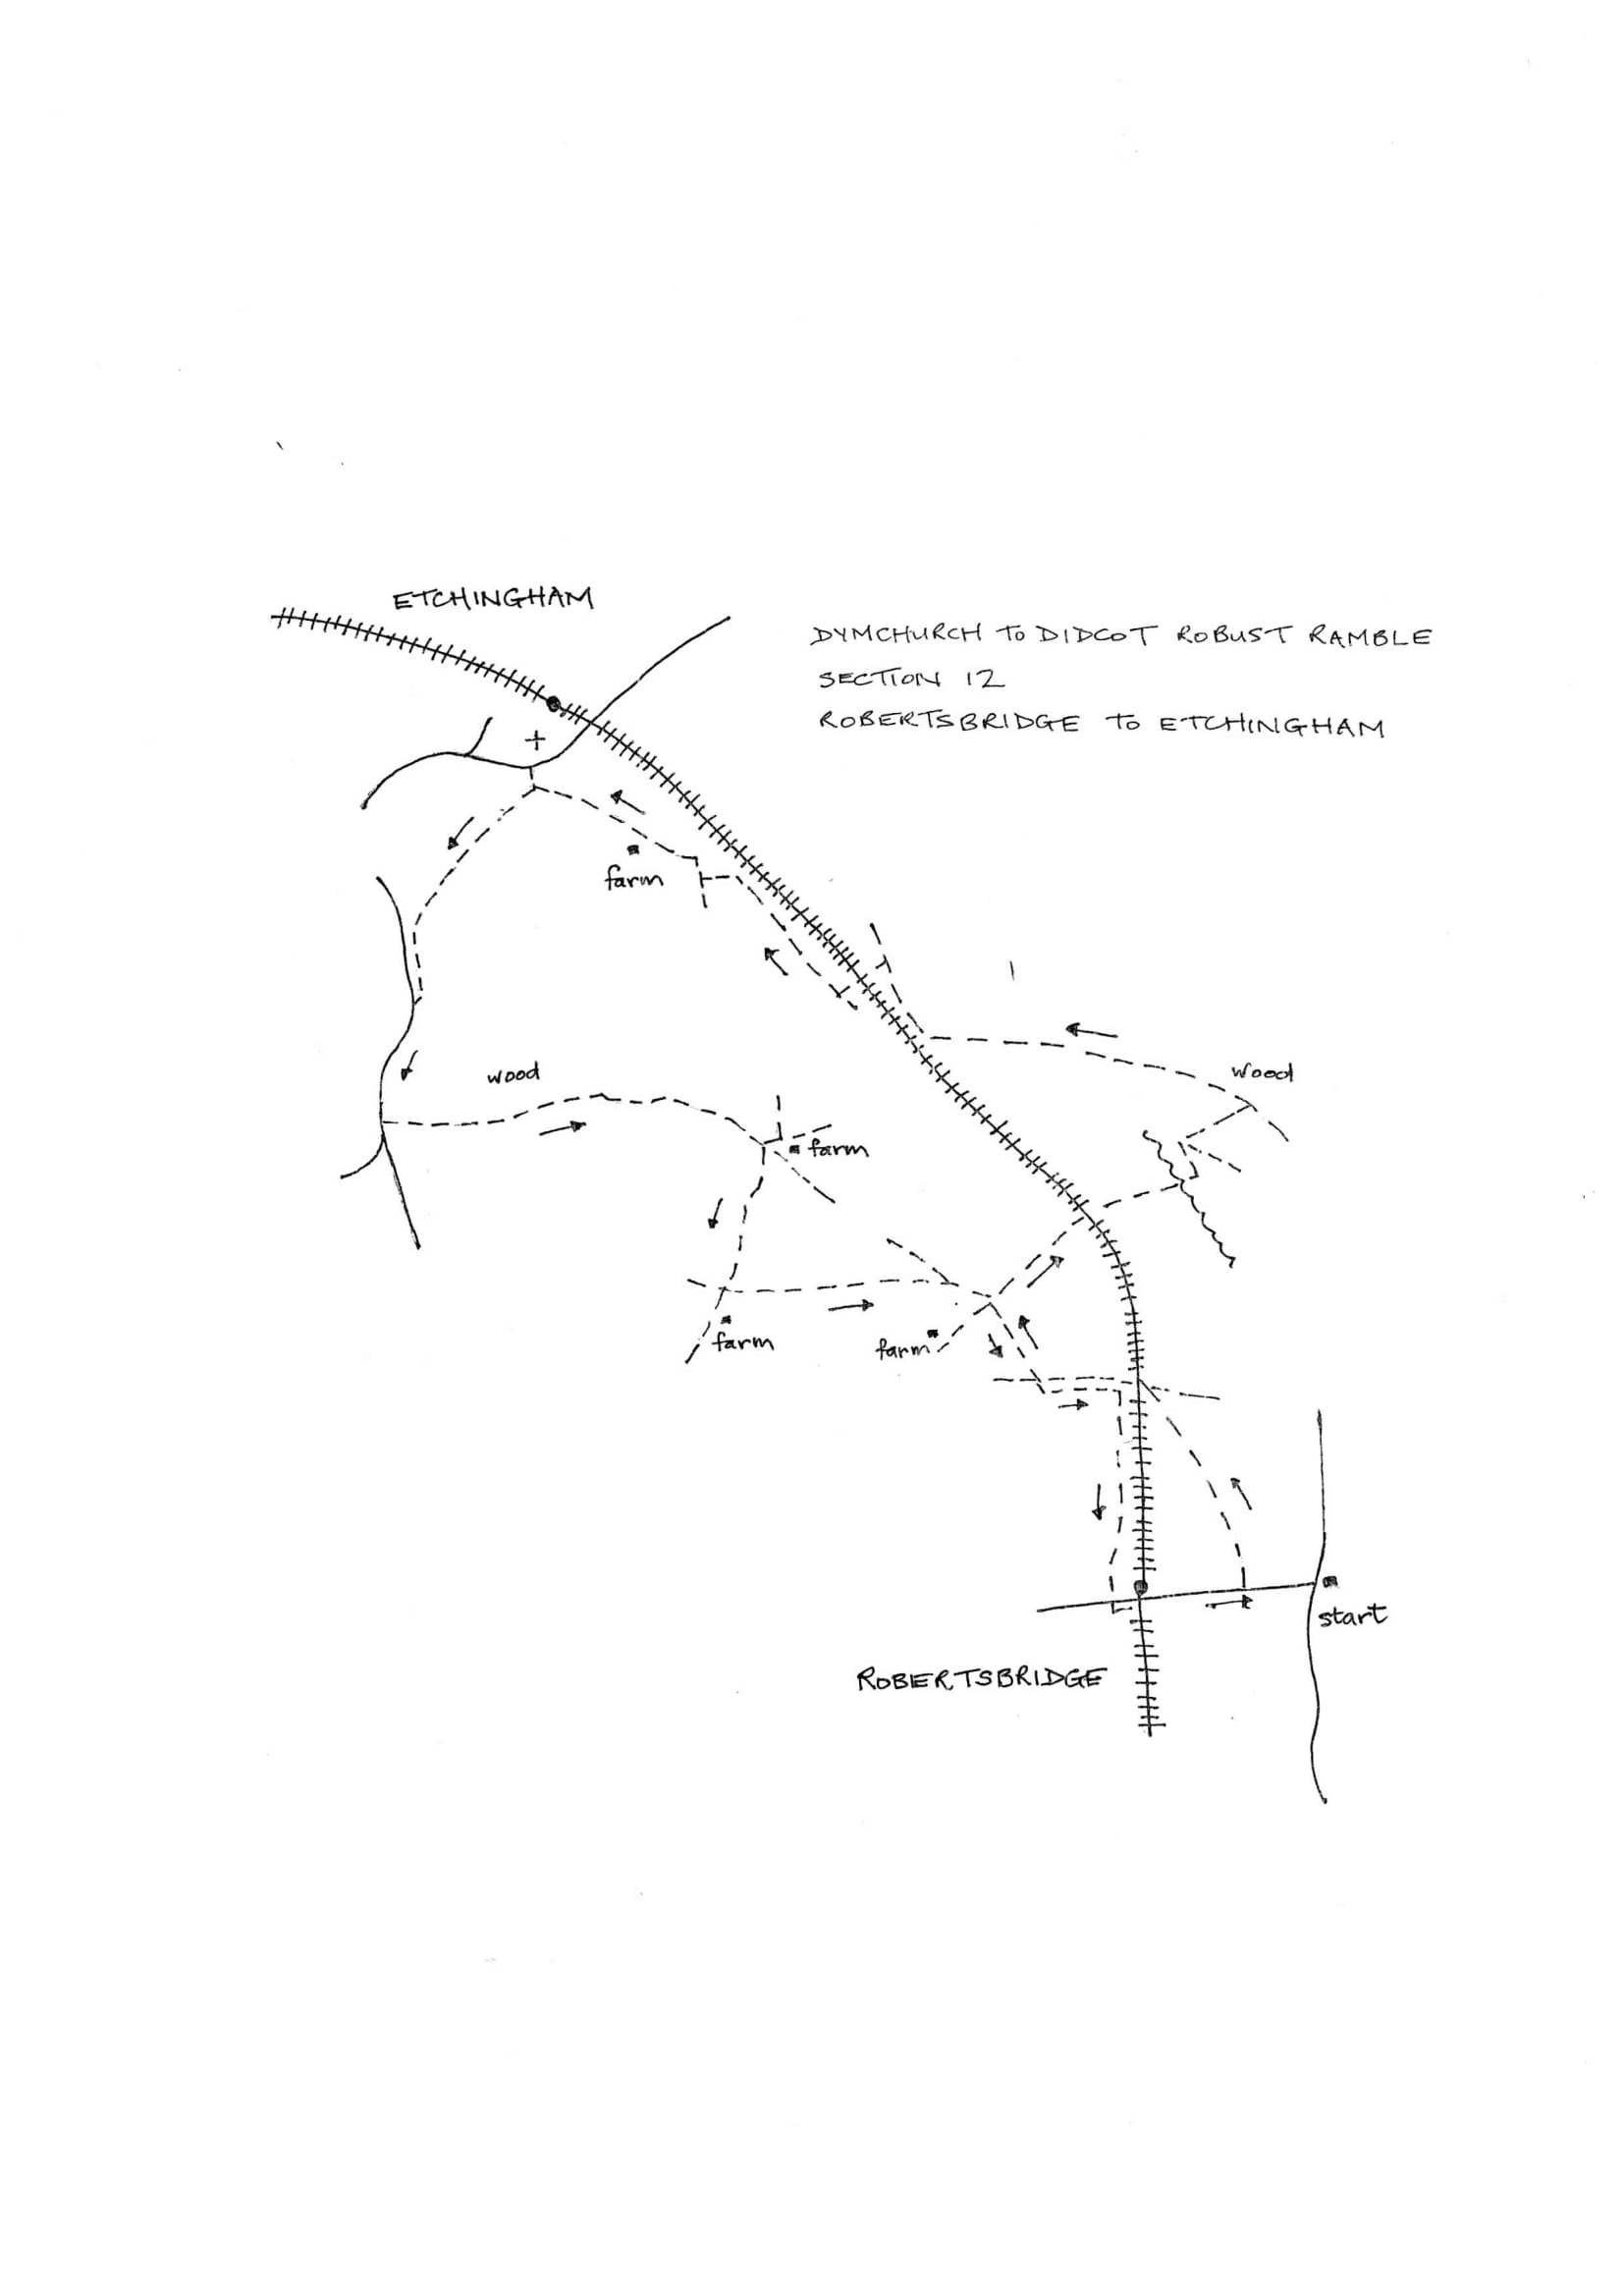 Map of Dymchurch To Didcot Robust Ramble: Section 12 Out